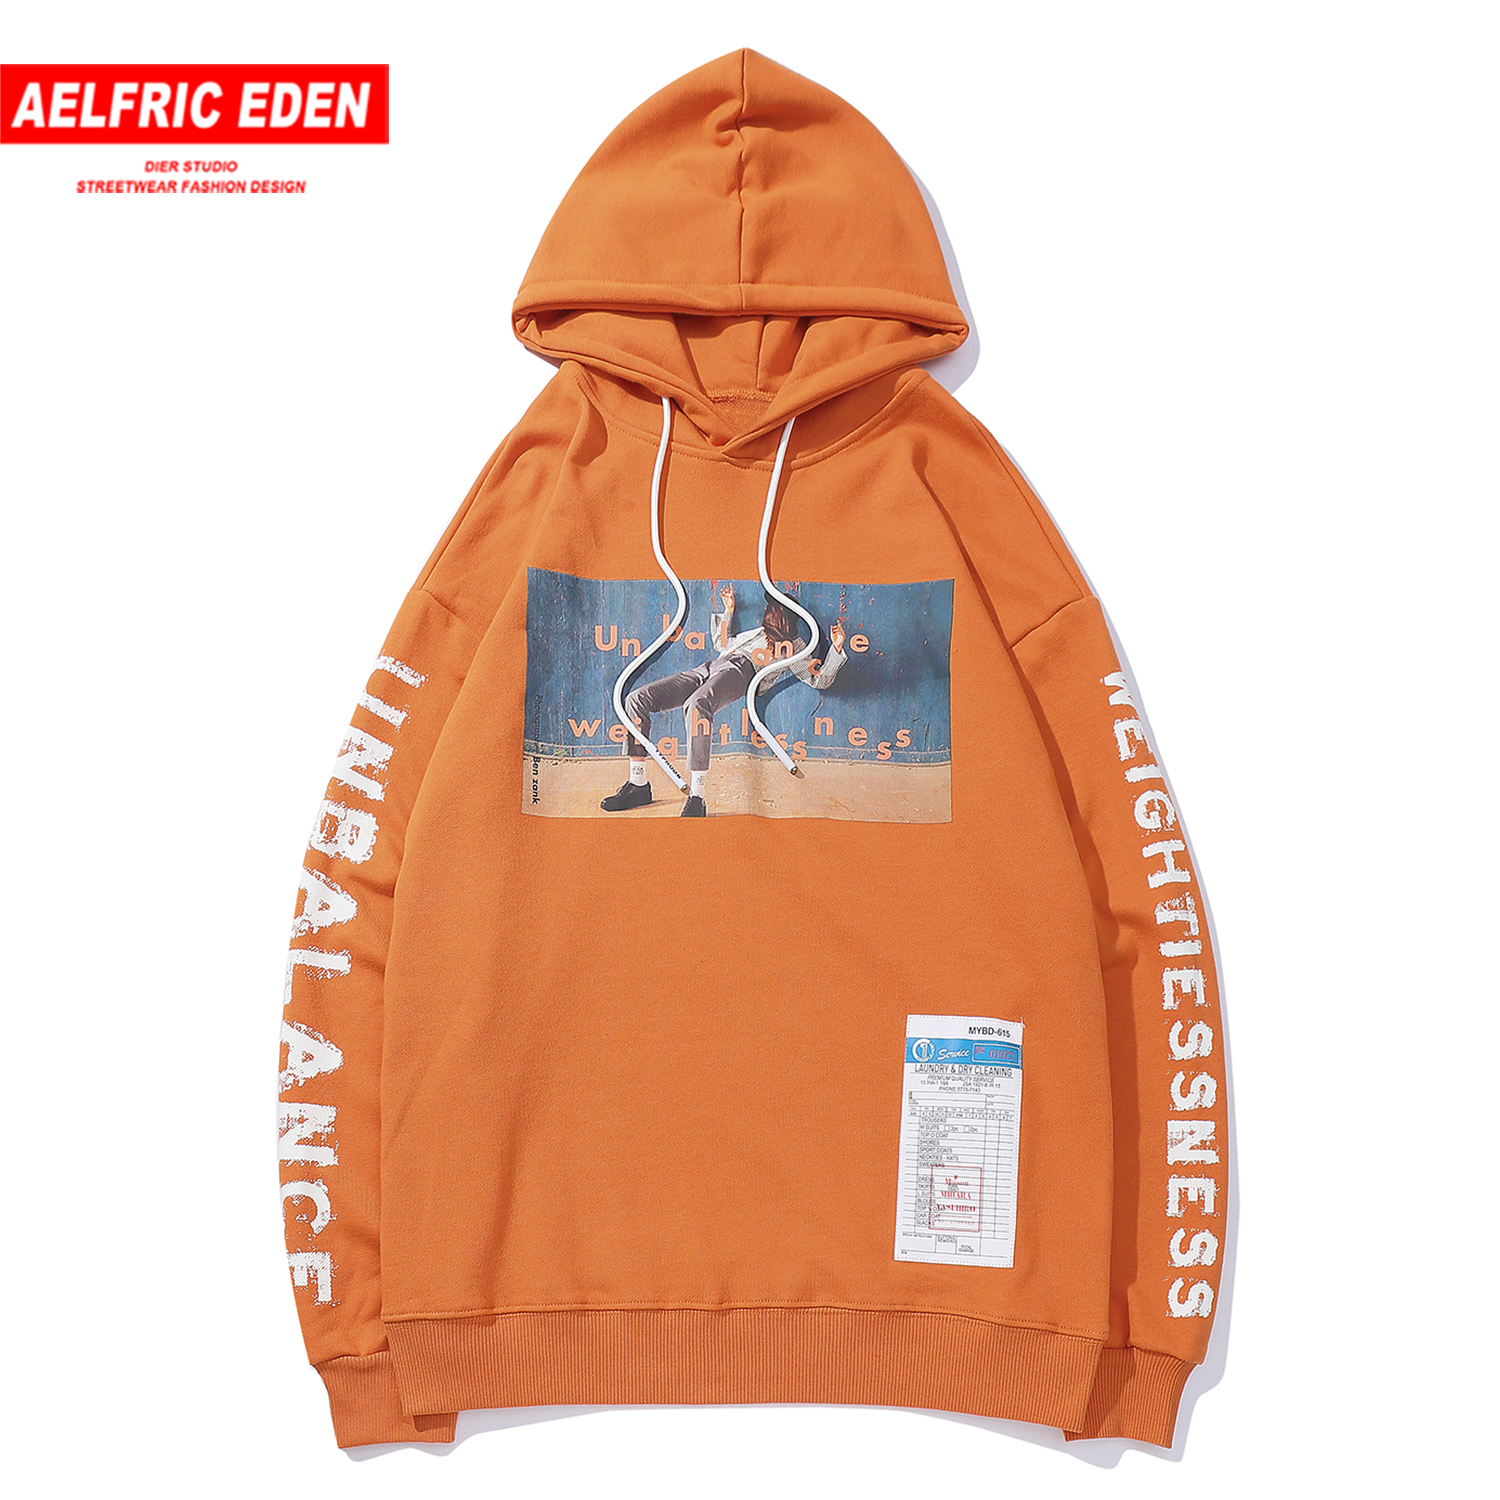 Aelfric Eden Fashion Letter Printed Mens Hooded Sweatshirts Streetwear Harajuku Hip Hop Pullover Outwear Casual Cotton Hoodies